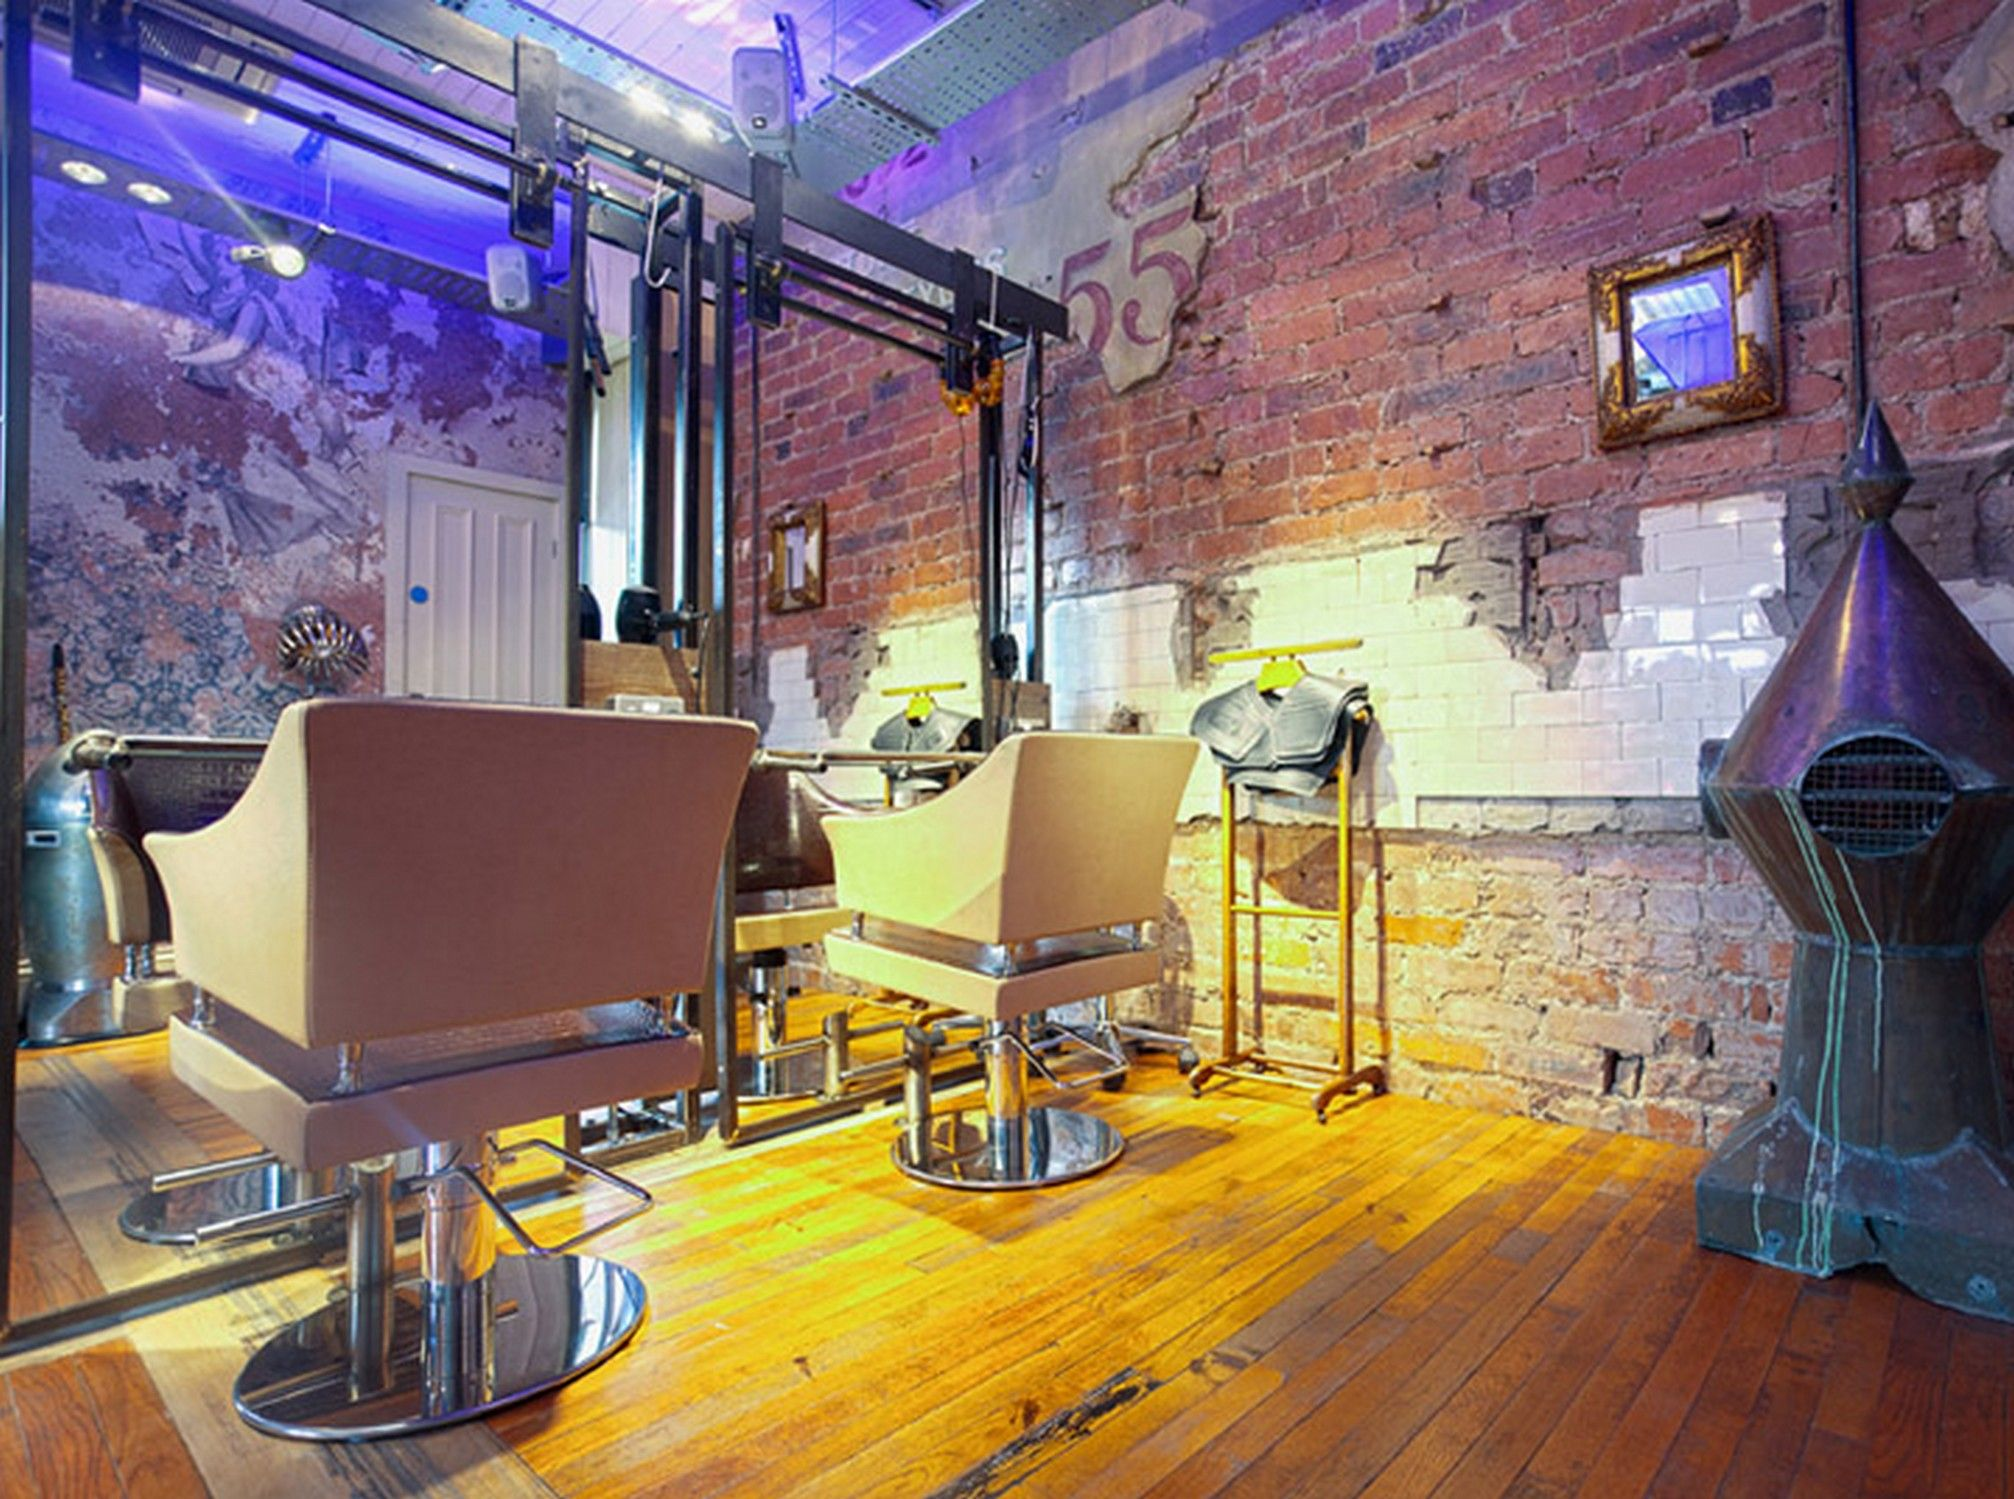 decorating retro hair salon design ideas with brick wall tiles and wood flooring ideas